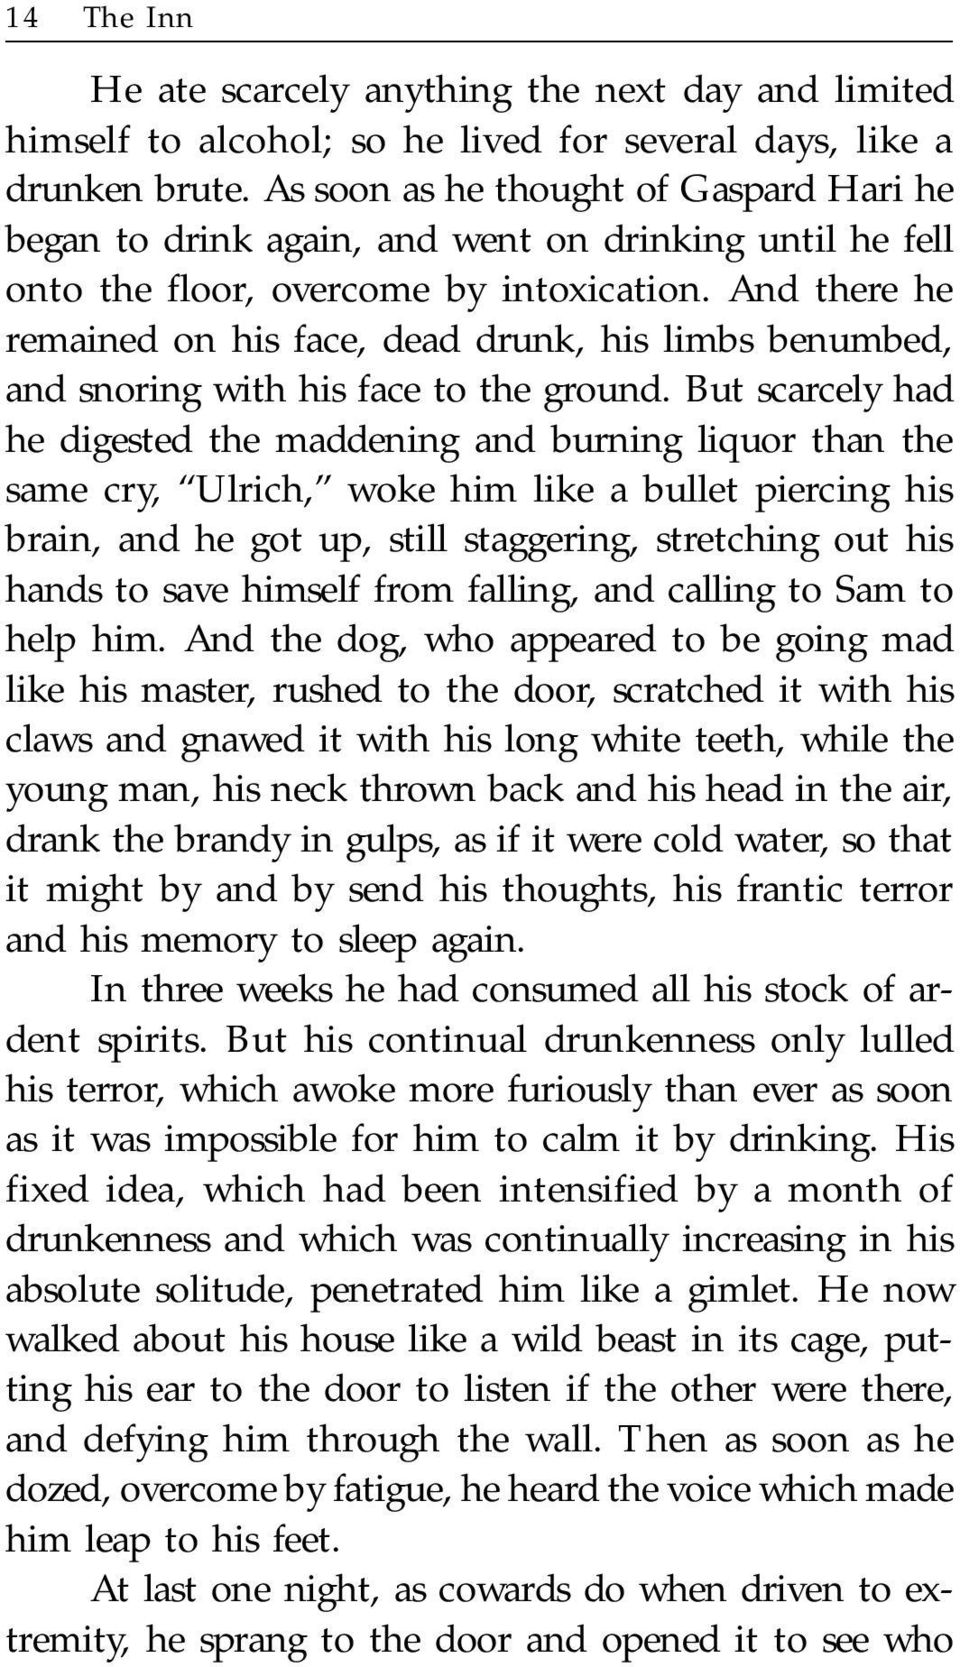 And there he remained on his face, dead drunk, his limbs benumbed, and snoring with his face to the ground.